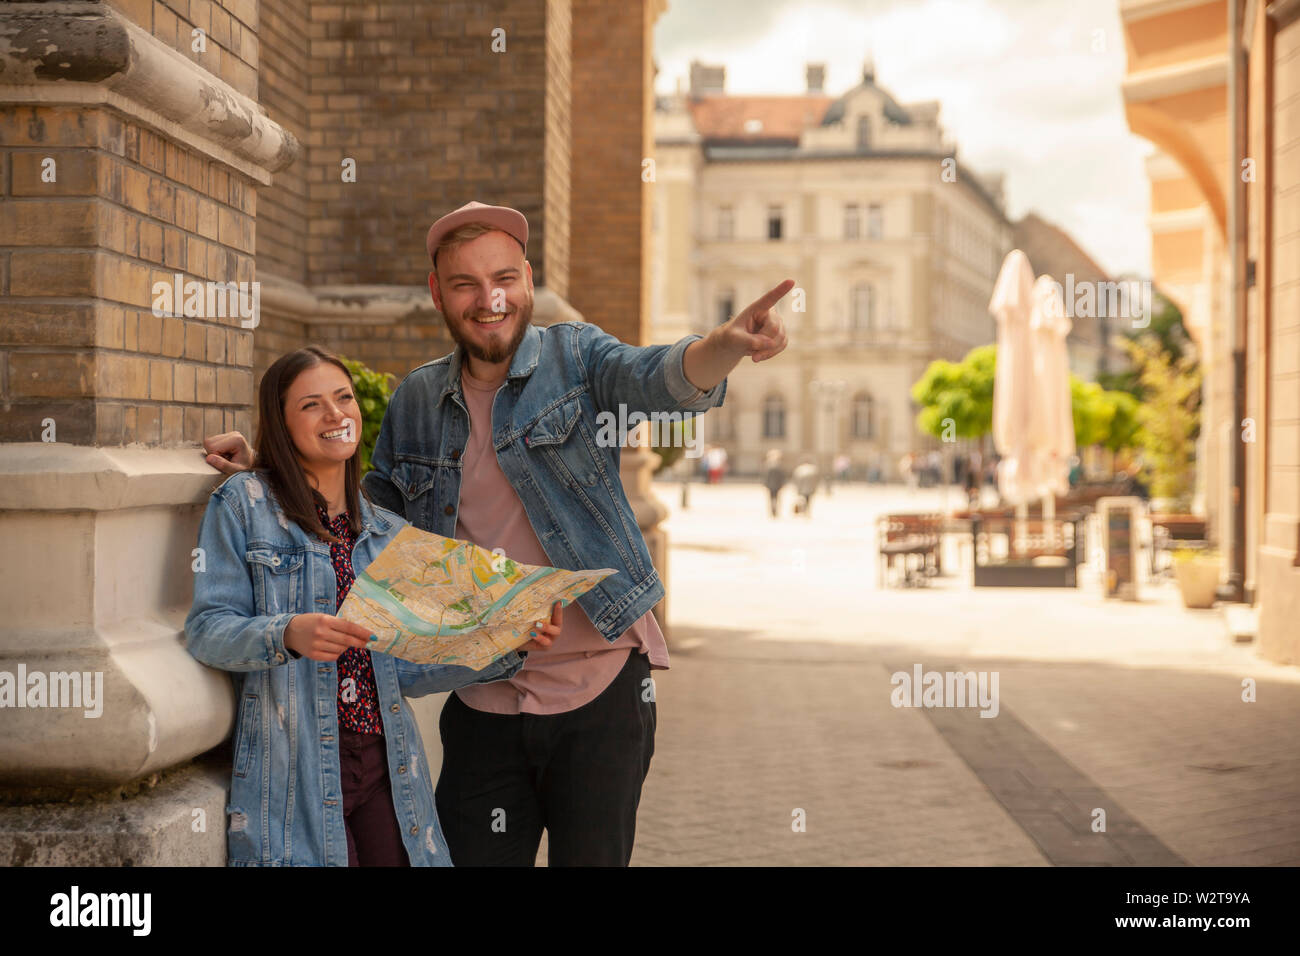 two friends, or couple, looking at a city map while one man is pointing finger. Location Novi Sad, Serbia. Stock Photo